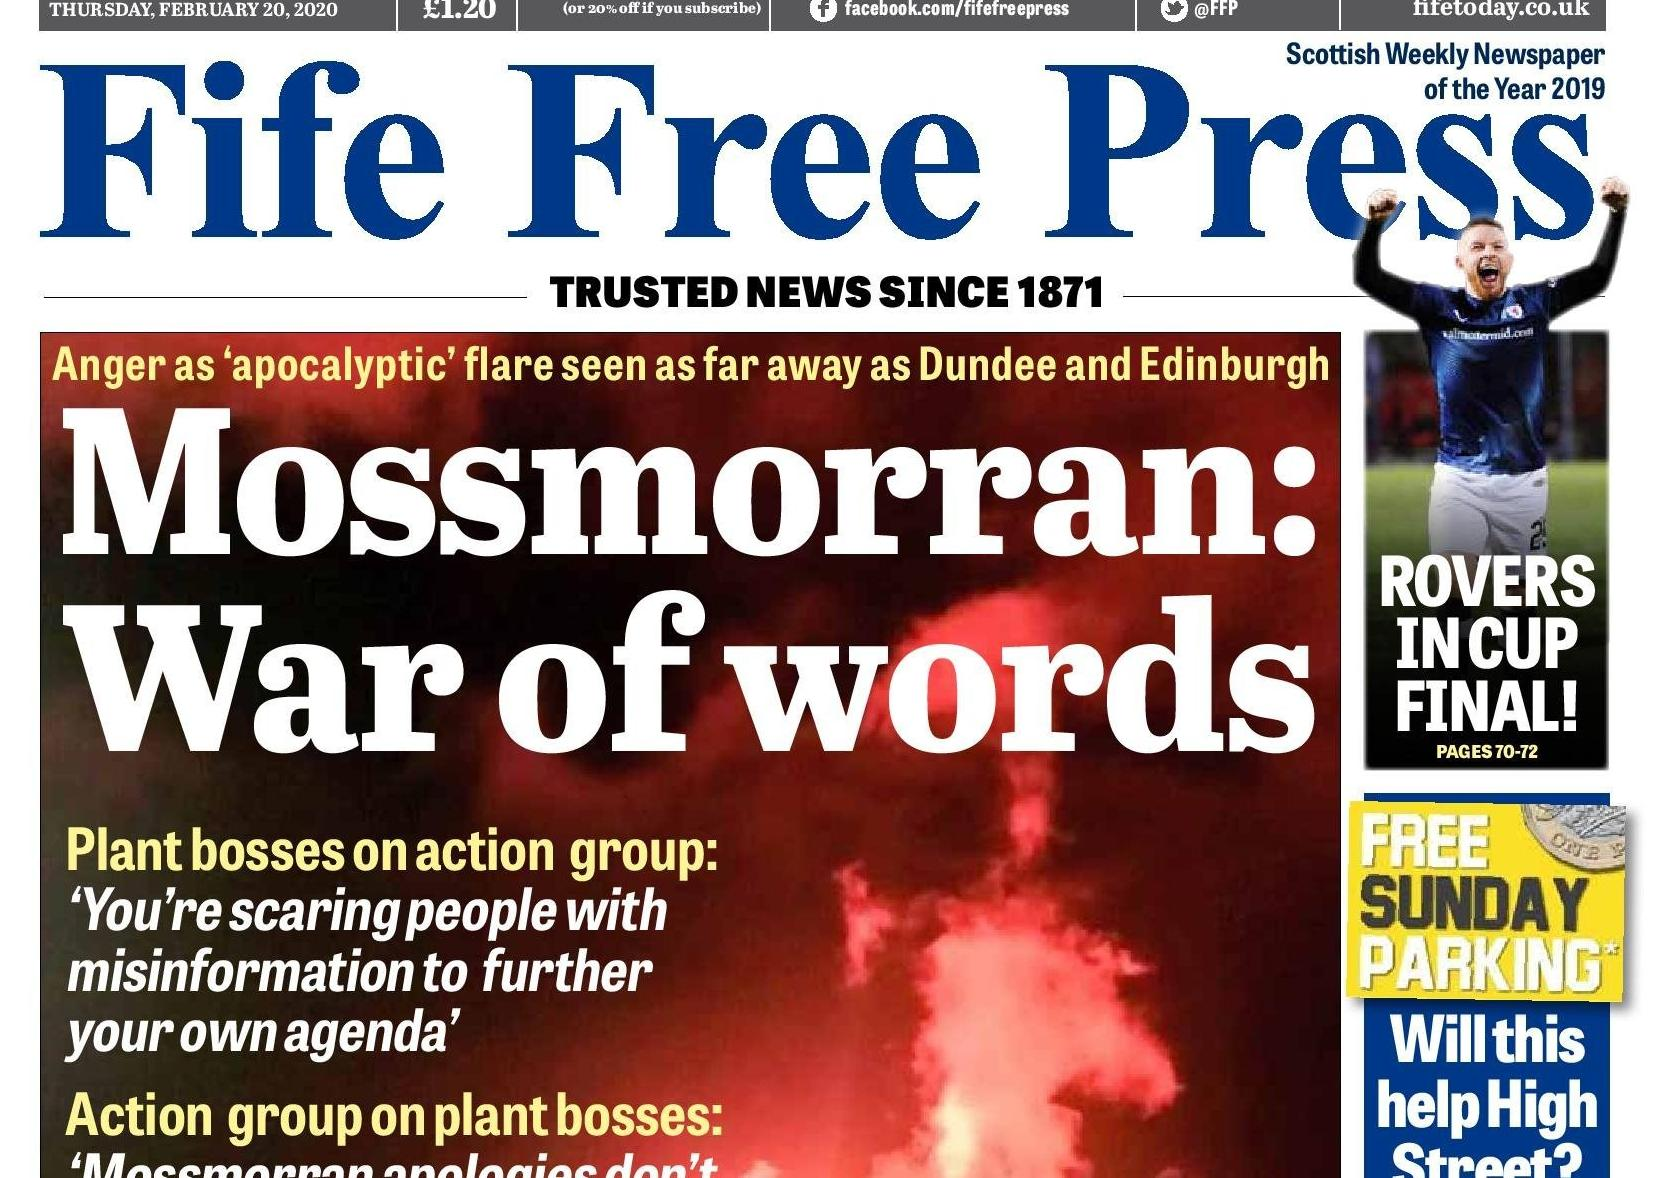 Comment: Time to end tit-for-tat words on Mossmorran